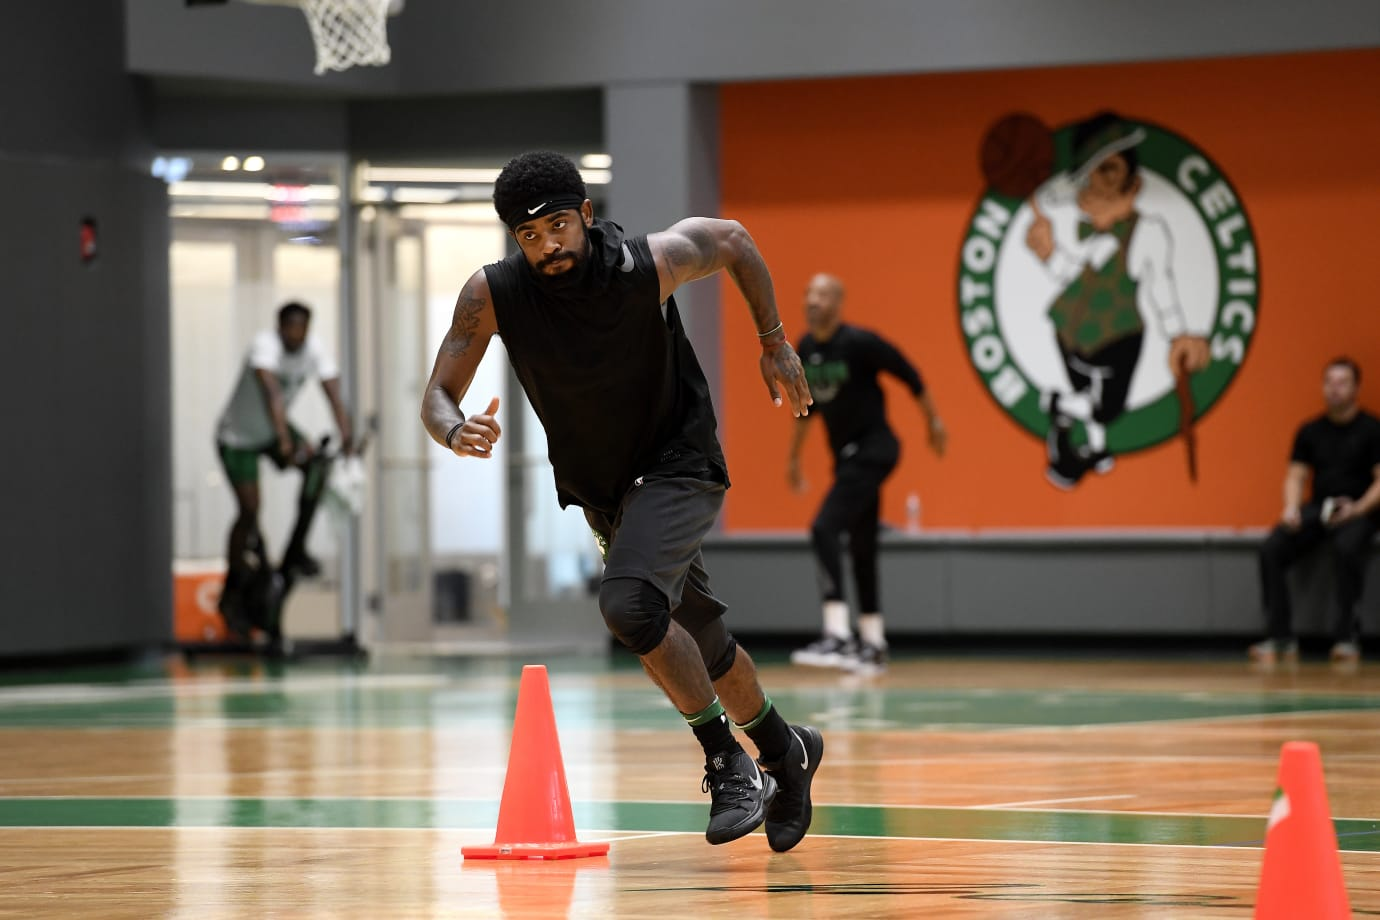 Kyrie Irving in the Nike Kyrie 5